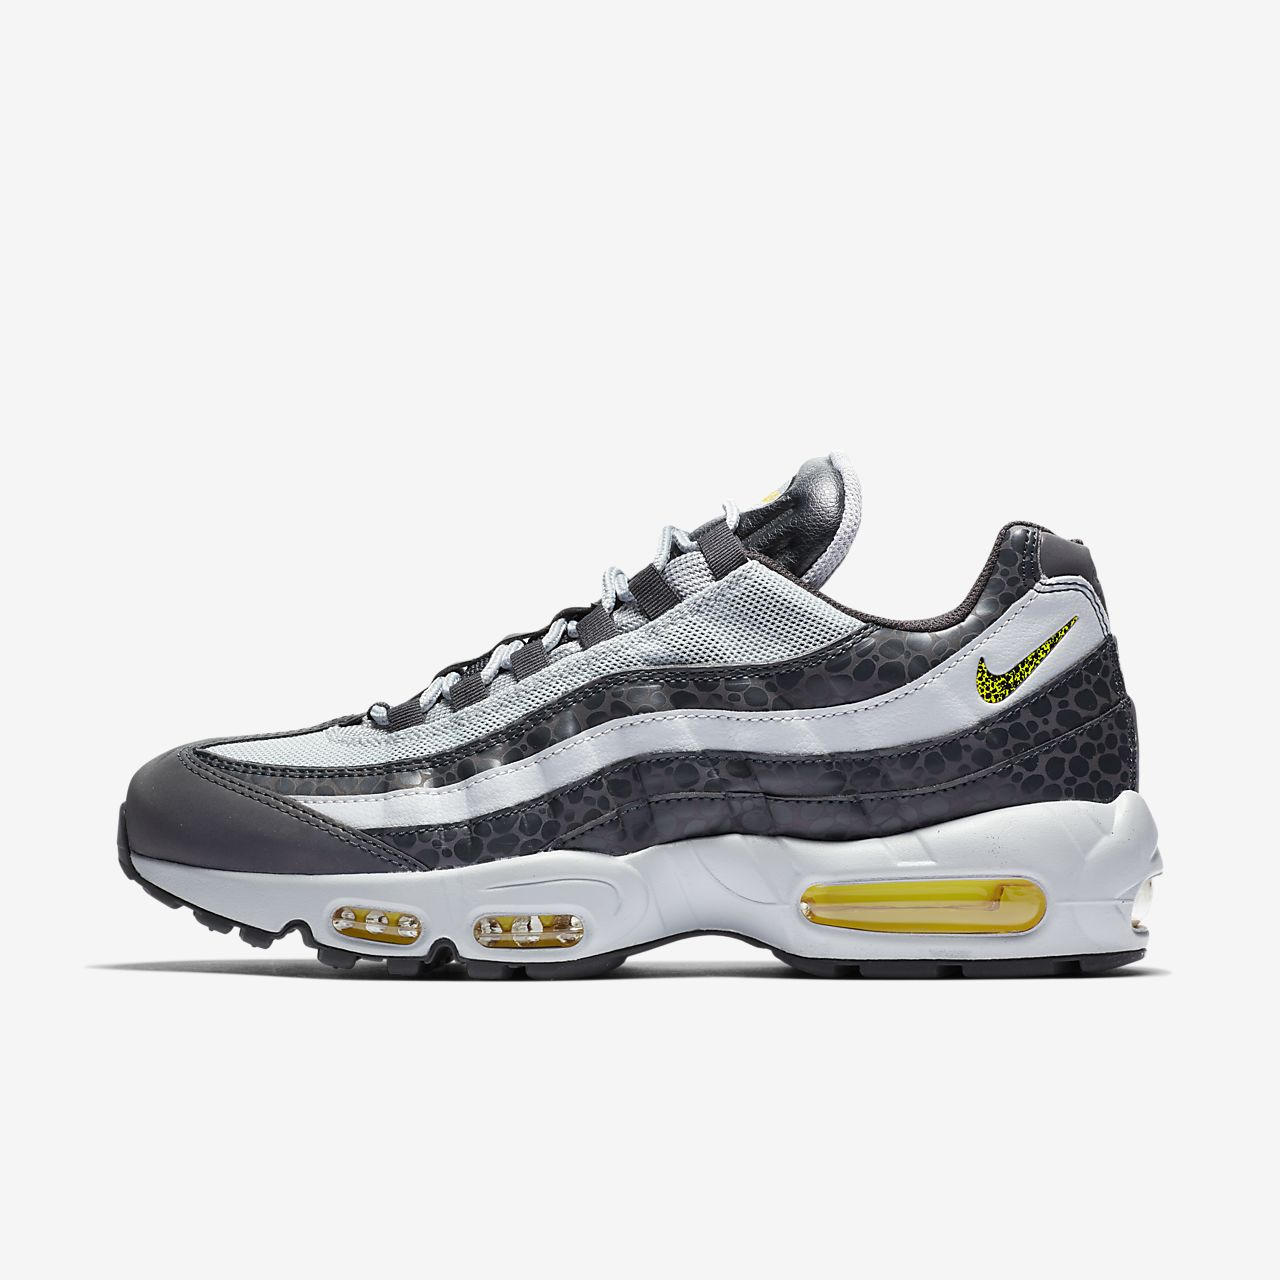 hot sale online 20dce a0627 ... Nike Air Max 95 SE Men s Shoe